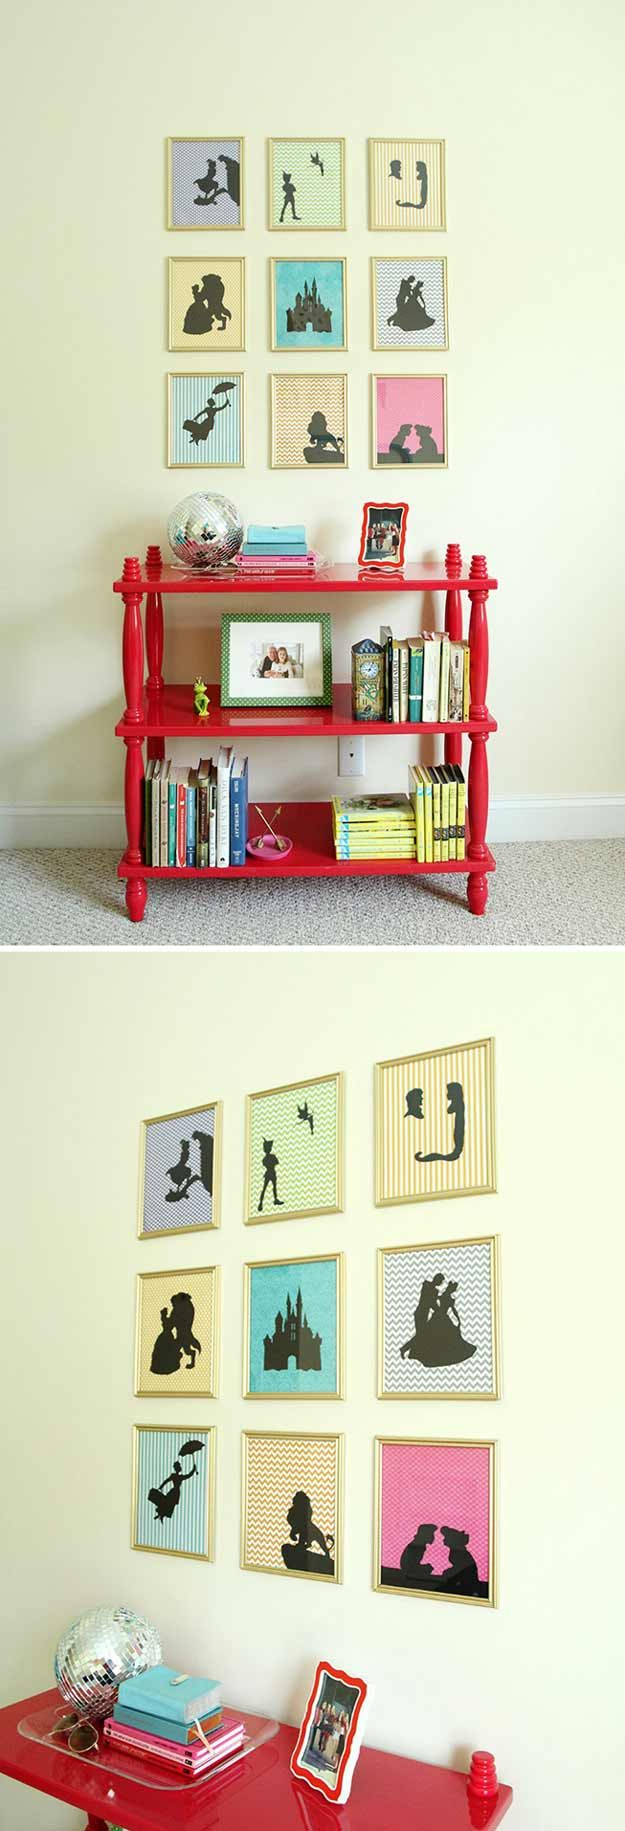 best 25 disney room decorations ideas on pinterest disney rooms disney bedrooms and disney bedroom decoration - Disney Bedroom Designs